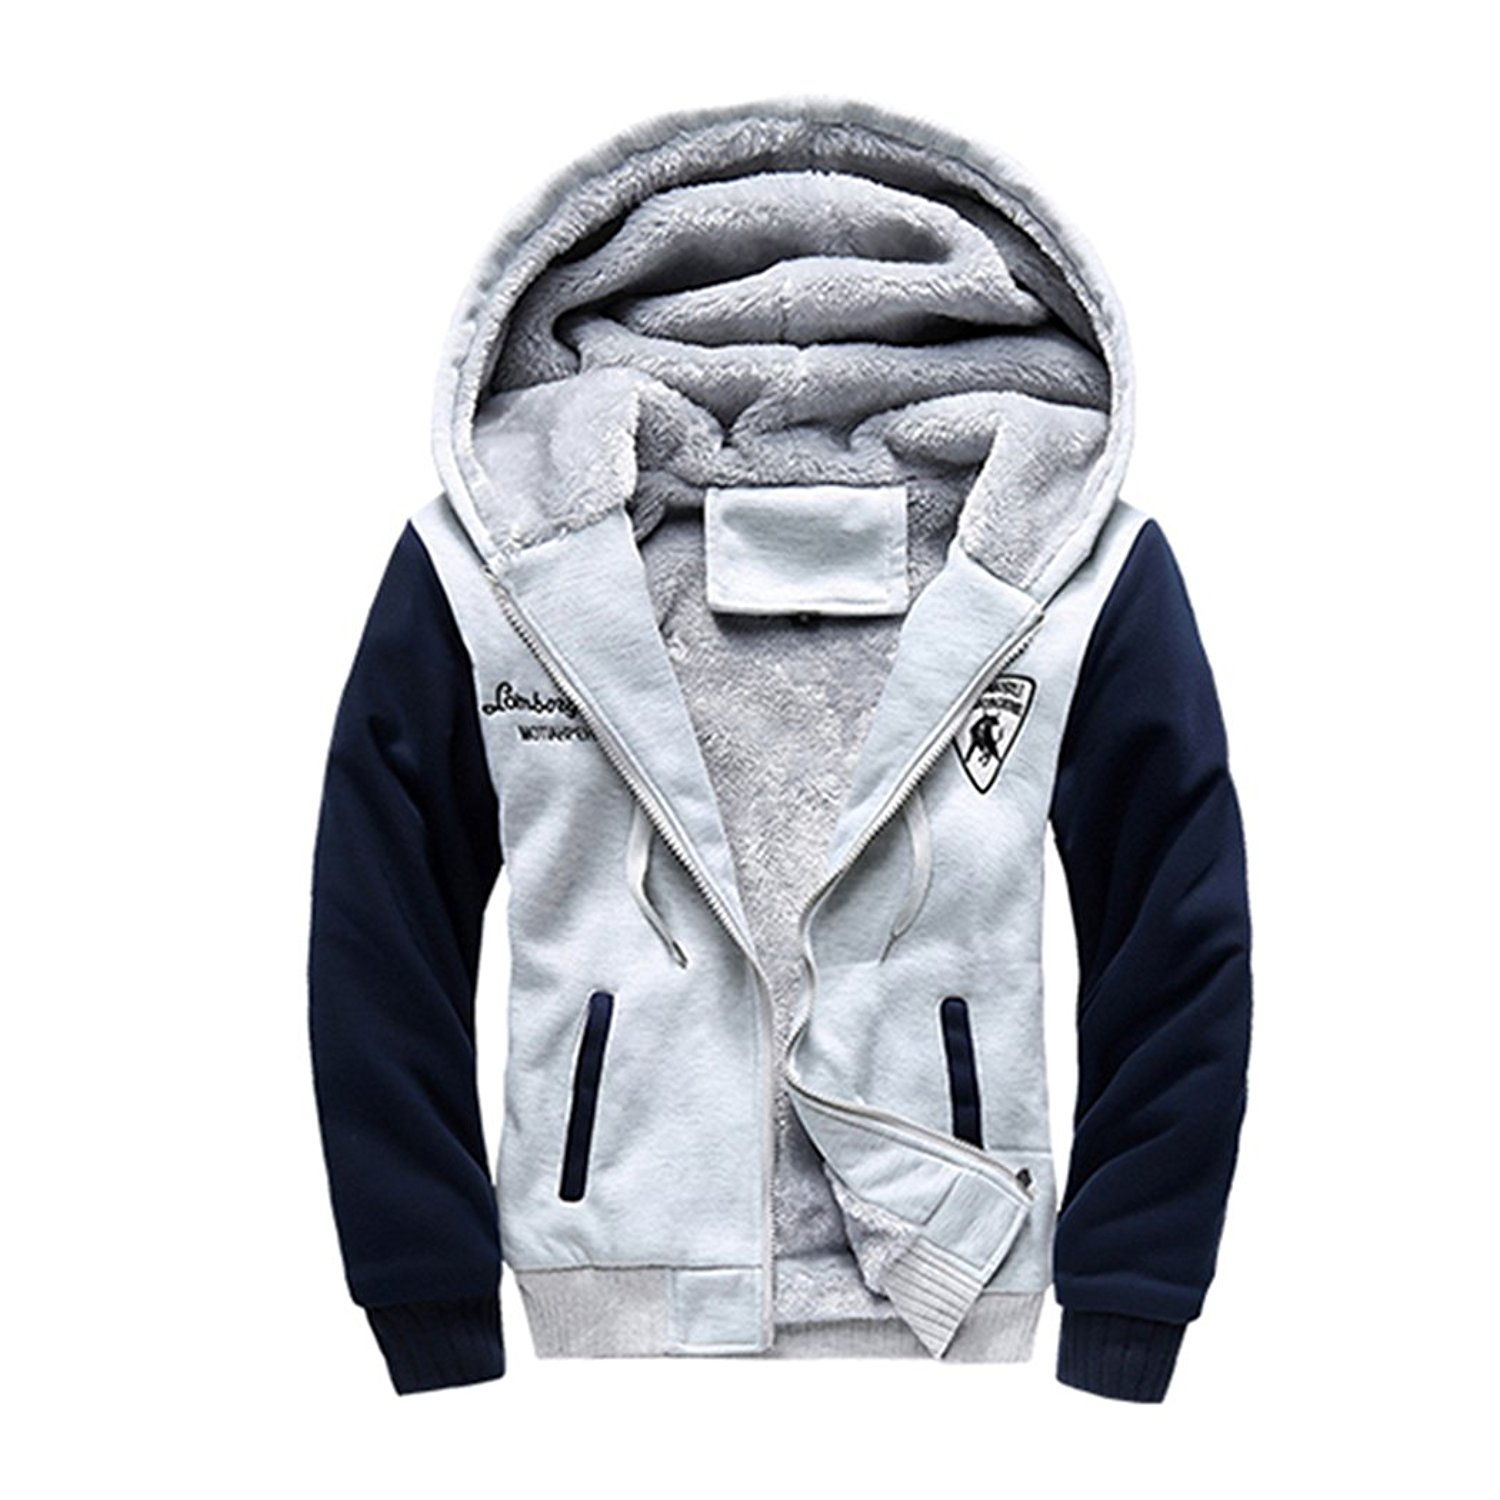 Pivaconis Mens Long Sleeve Zip Up Casual Faux Fur Lined Thicken Hooded Sweatshirt Jacket